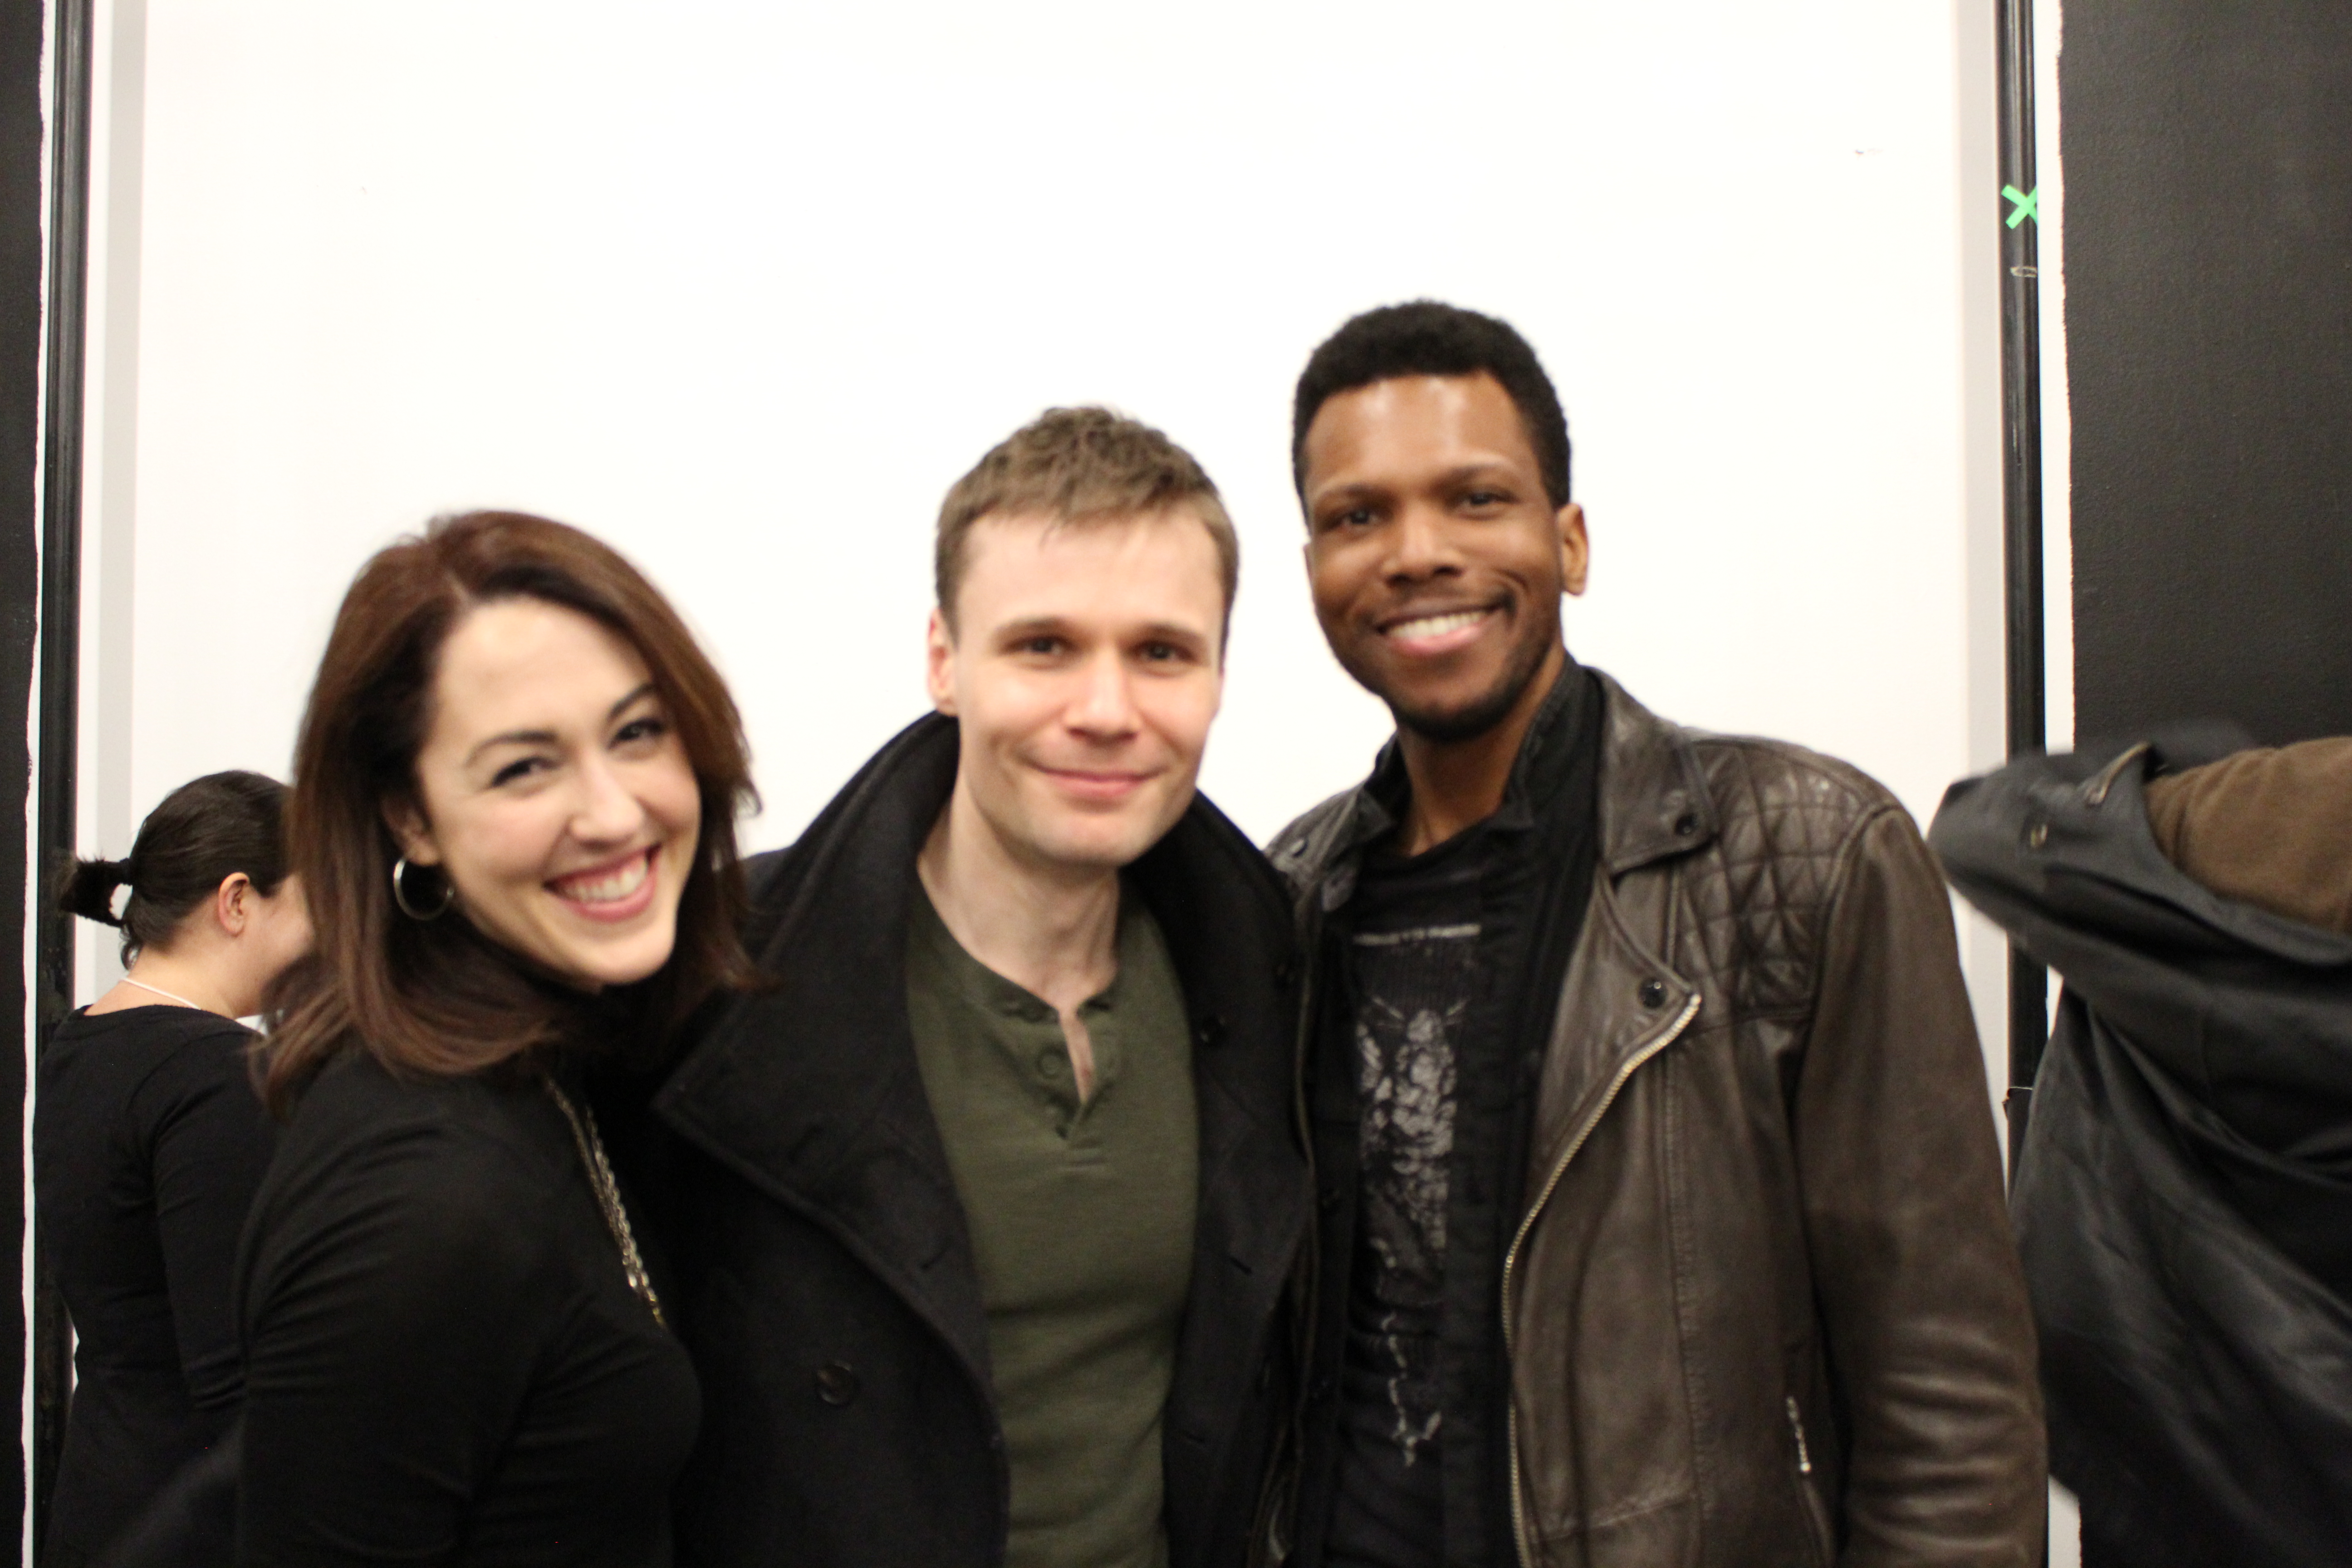 Photo of Kelley Curran (Clytemnestra), Josiah Bania (Orestes) and Corey Allen (Chorus) in rehearsal for The Oresteia.